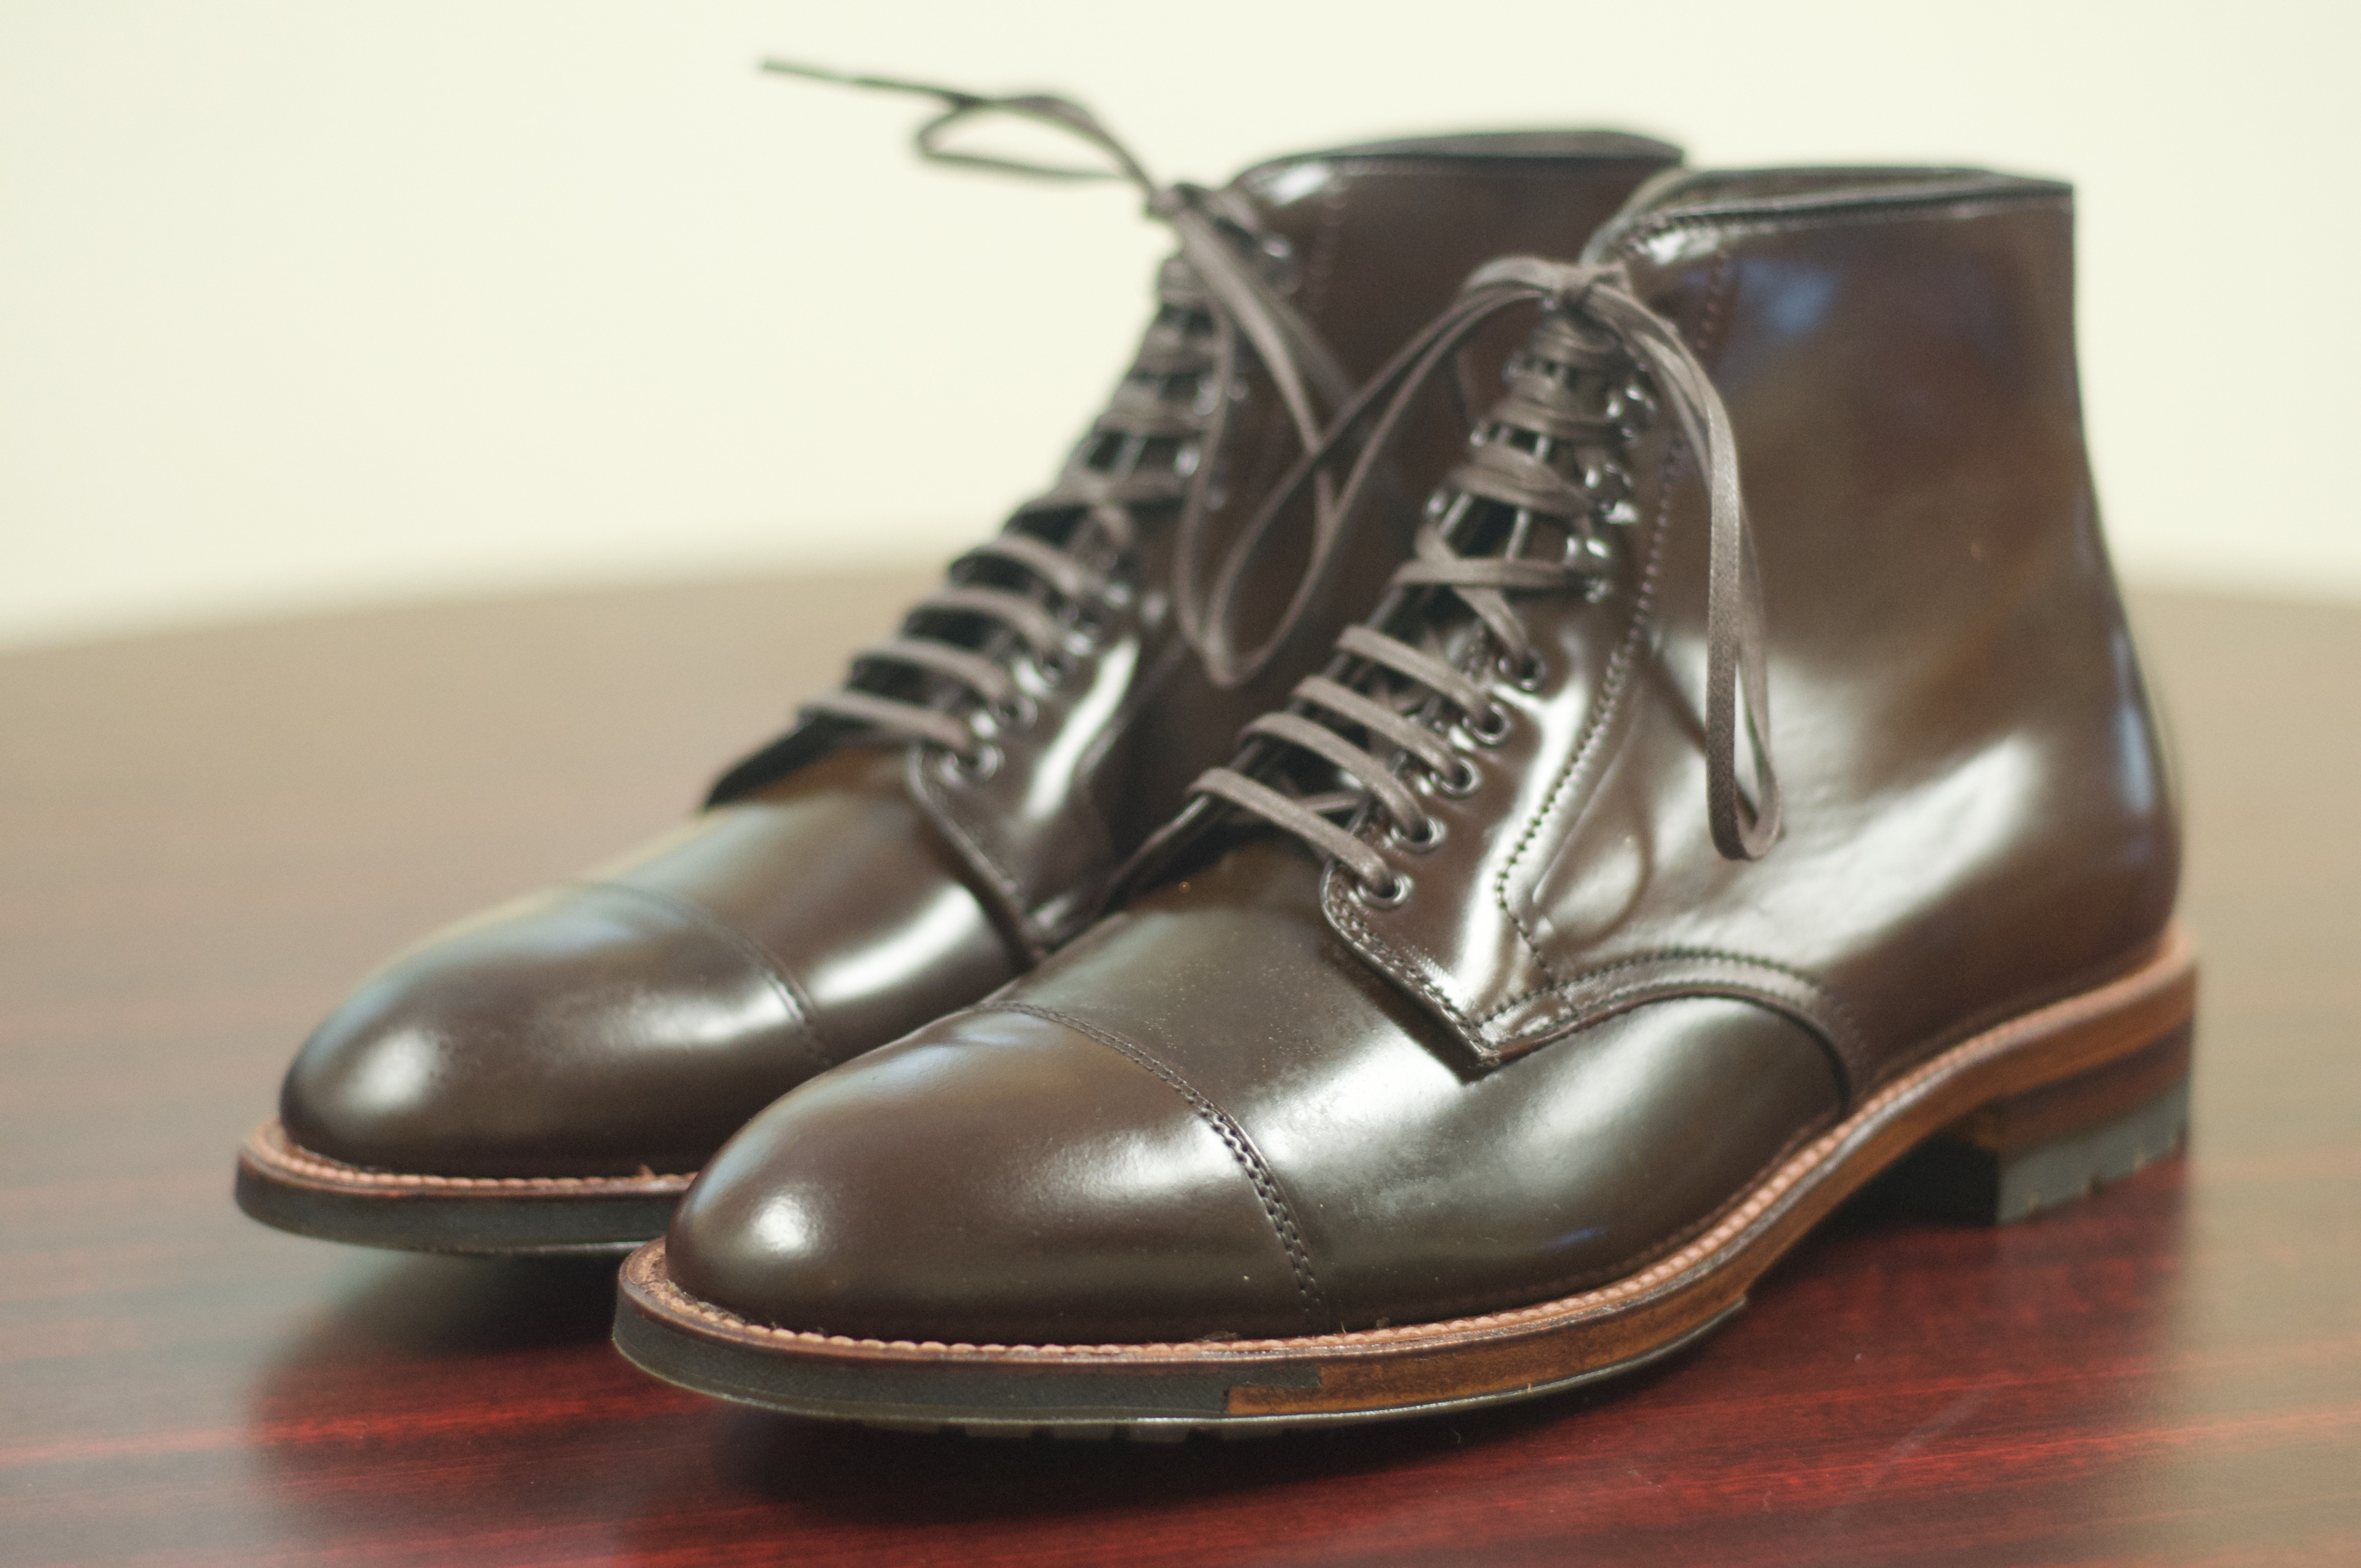 Alden-Cigar-Cap-Toe-Boot-3.jpg